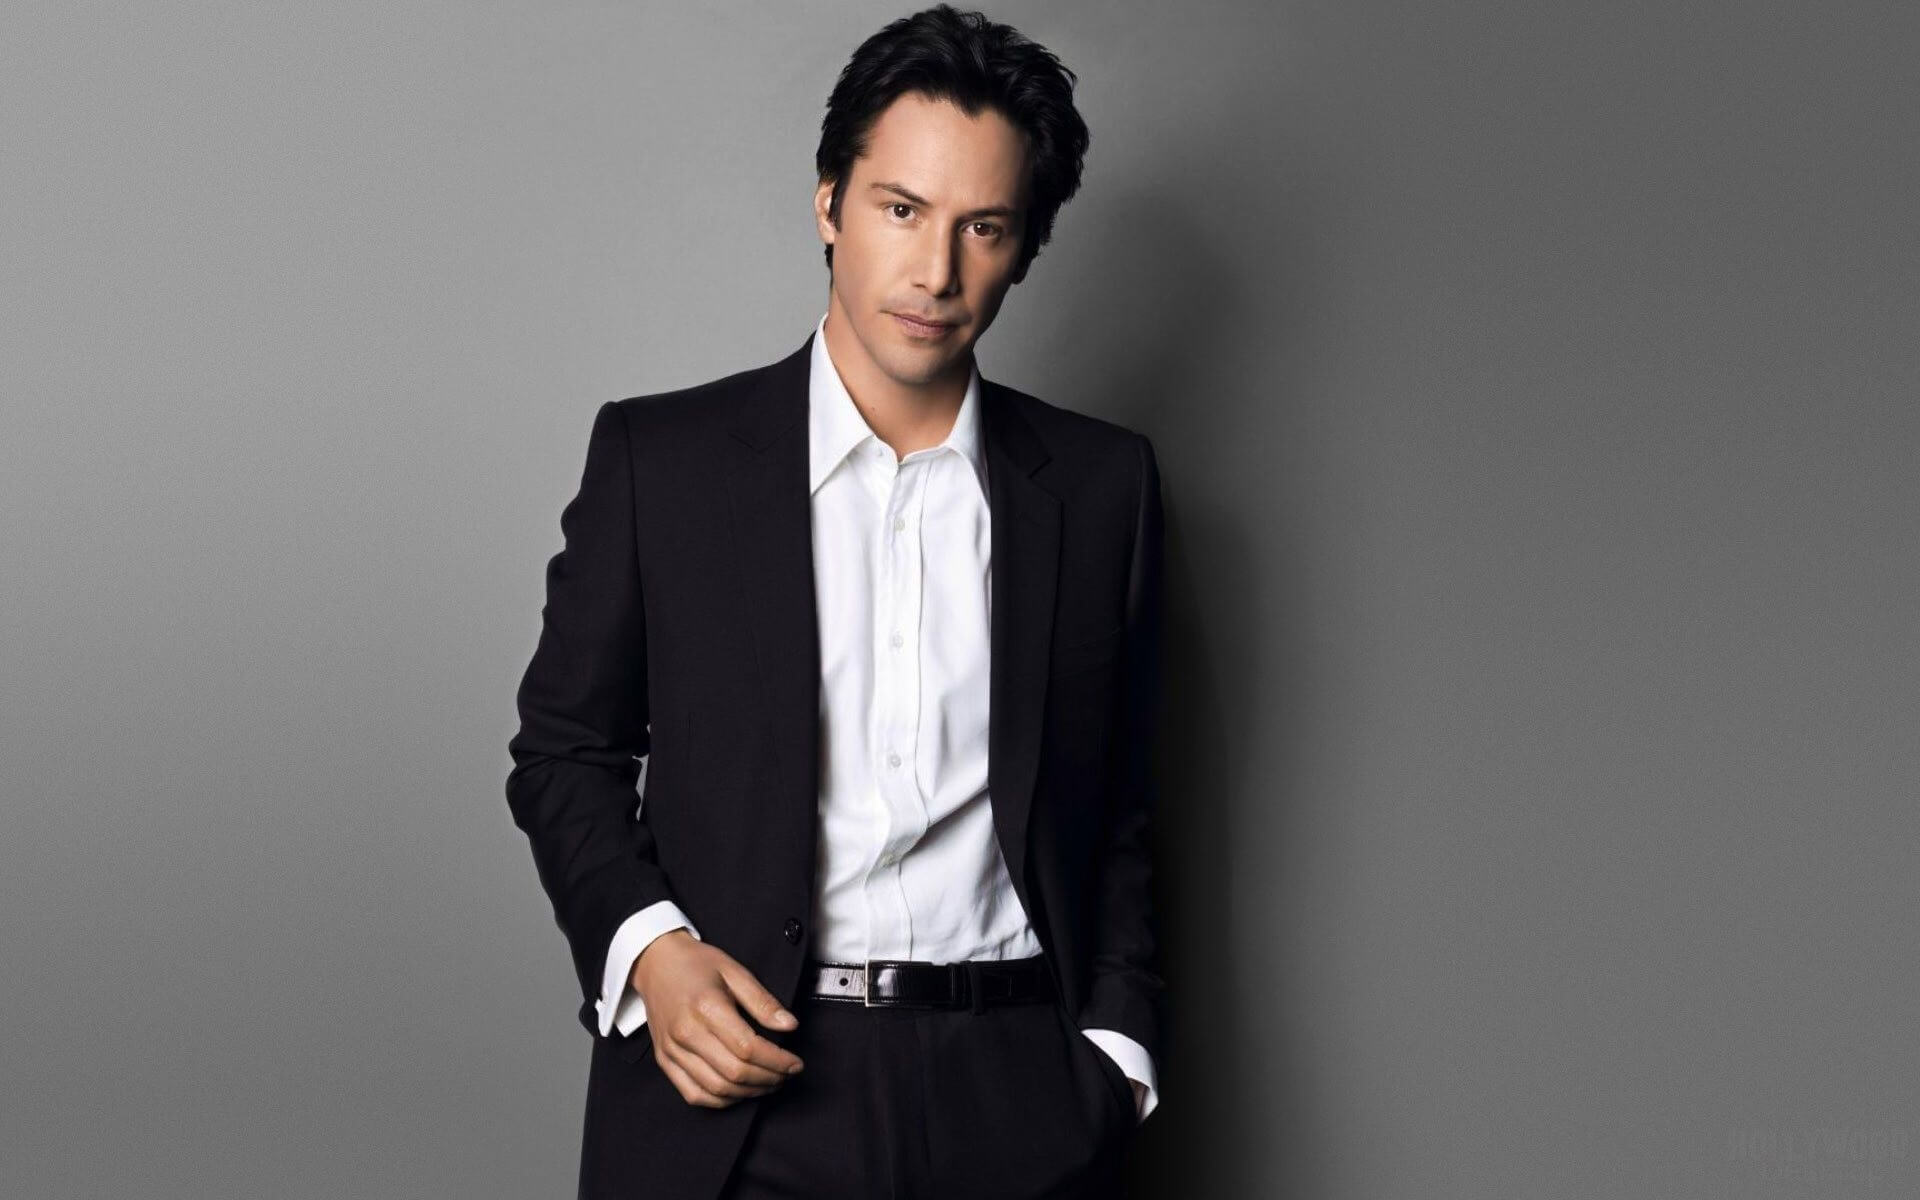 1920x1200_keanu-reeves-actor-male-celebrity-kianu-rivz-kostyum